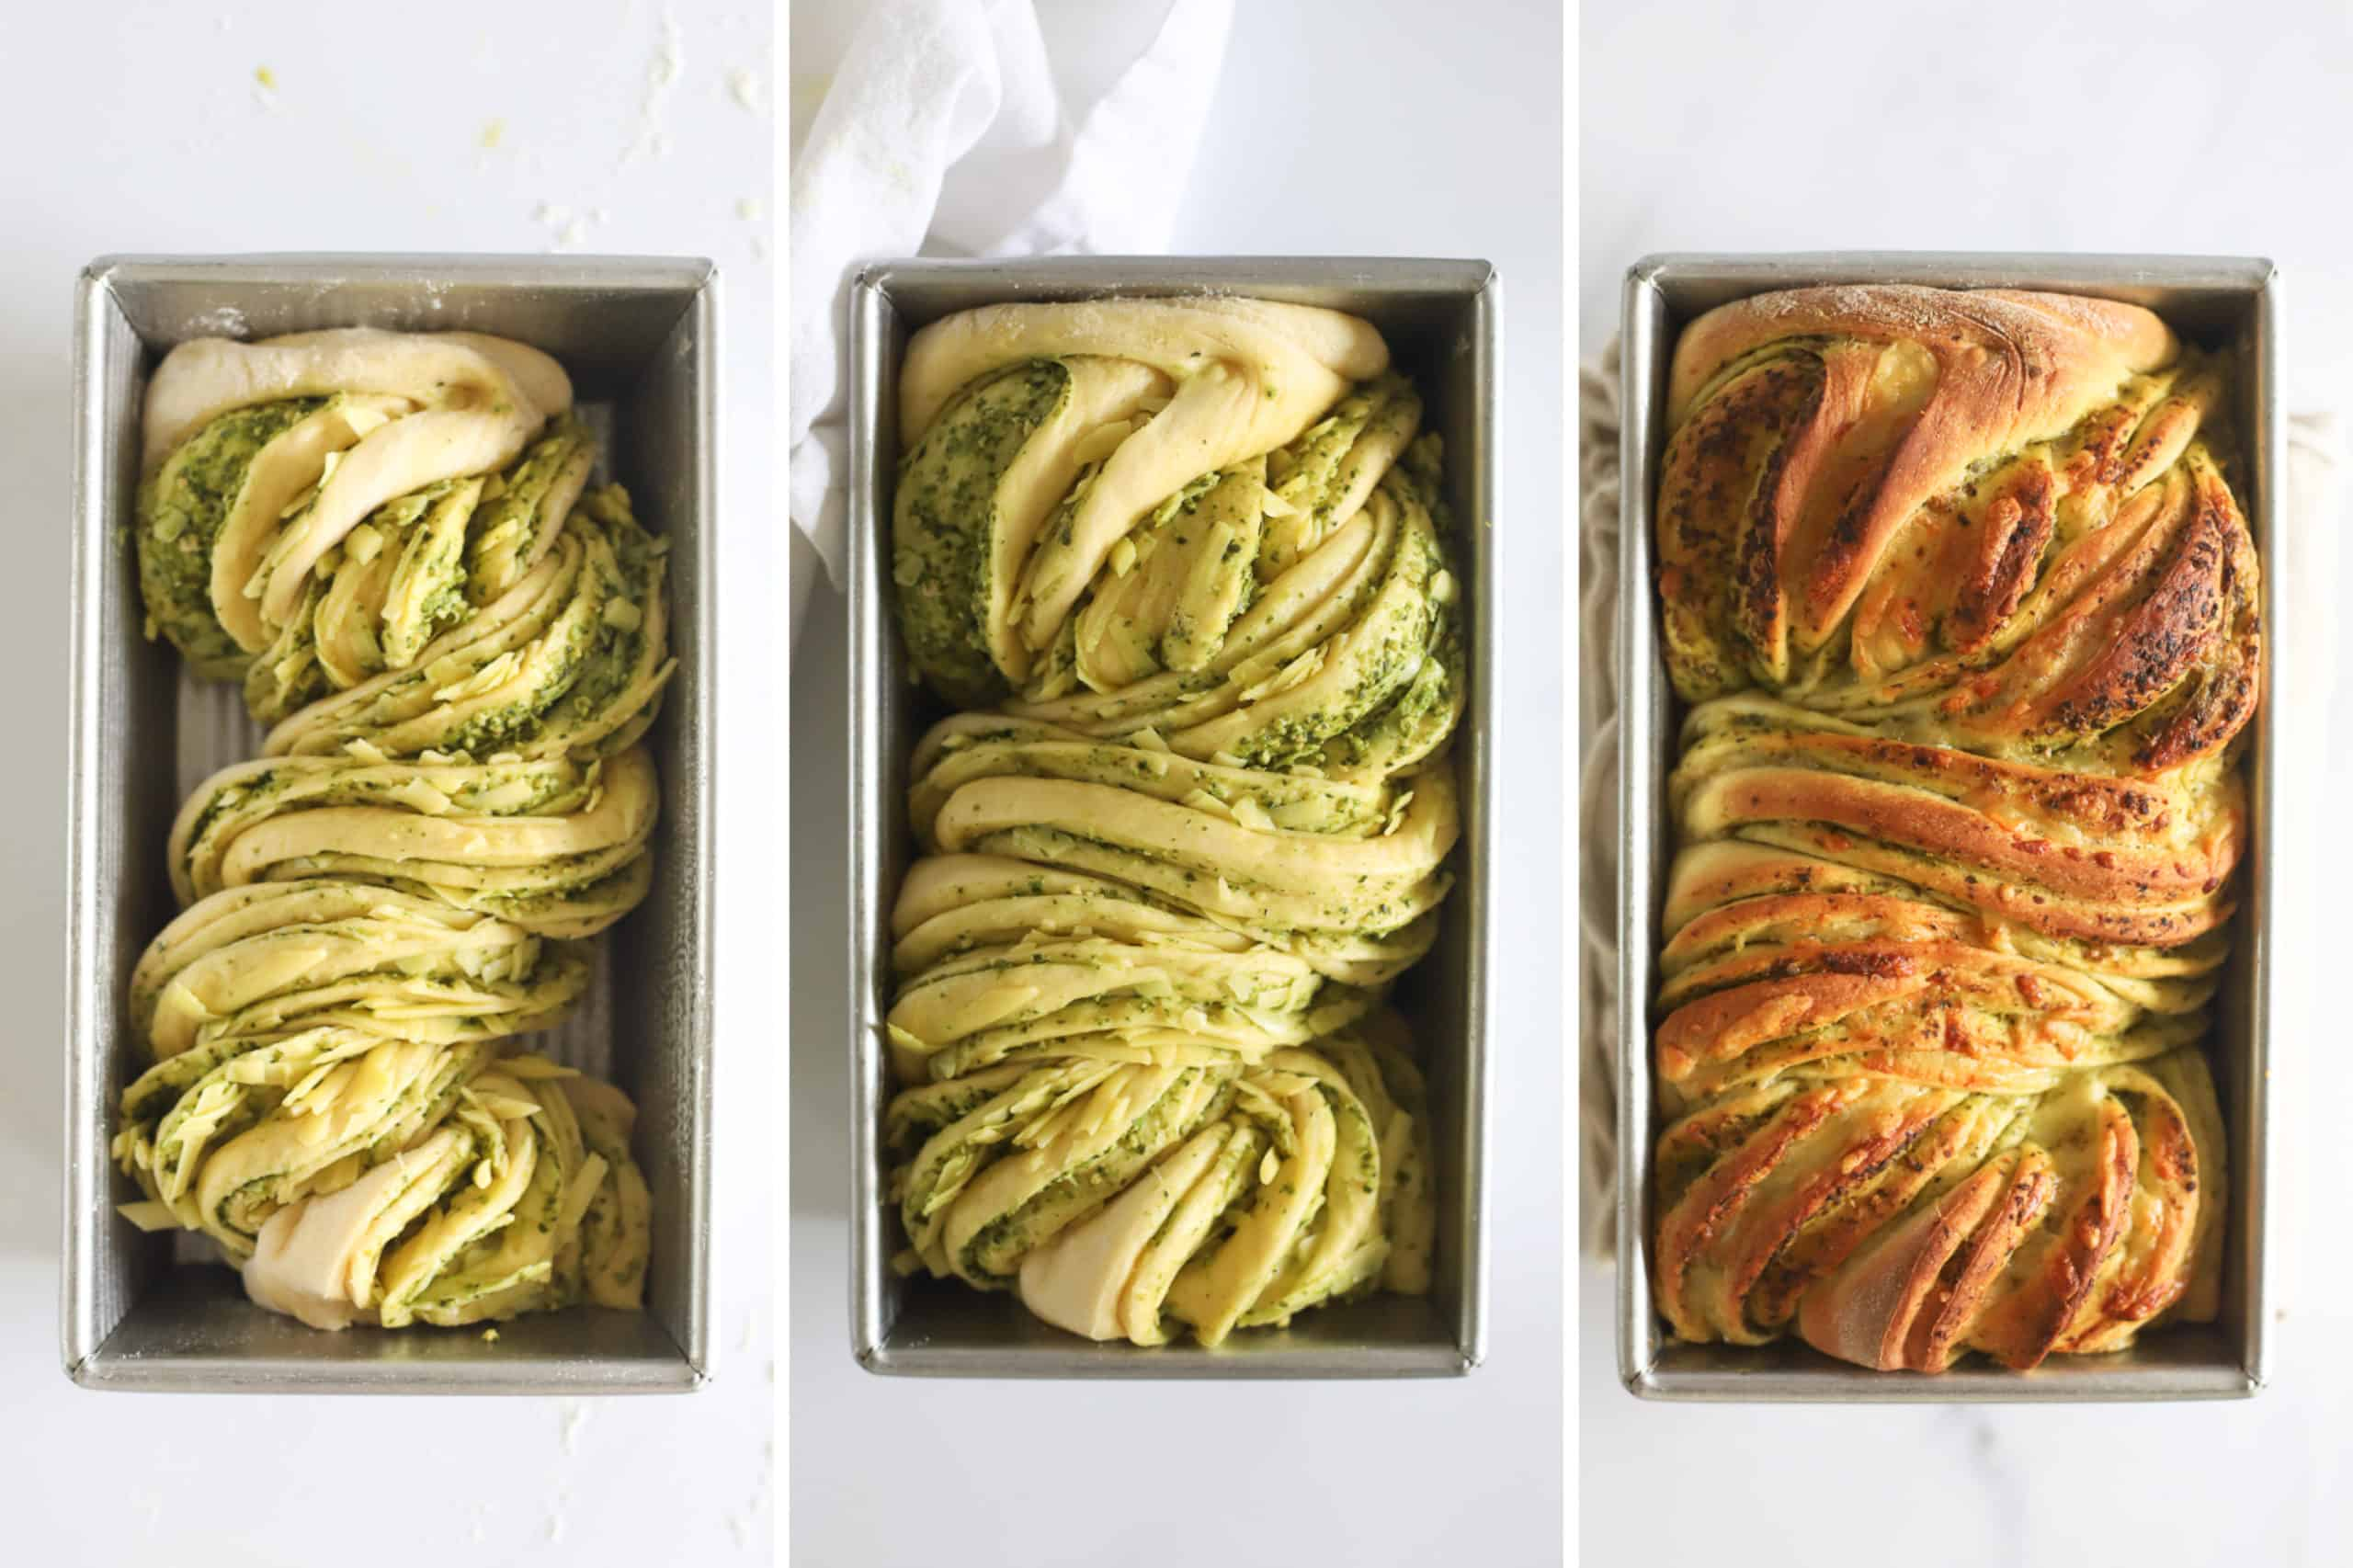 Collage of shaped loaf of pull apart bread rising and baked